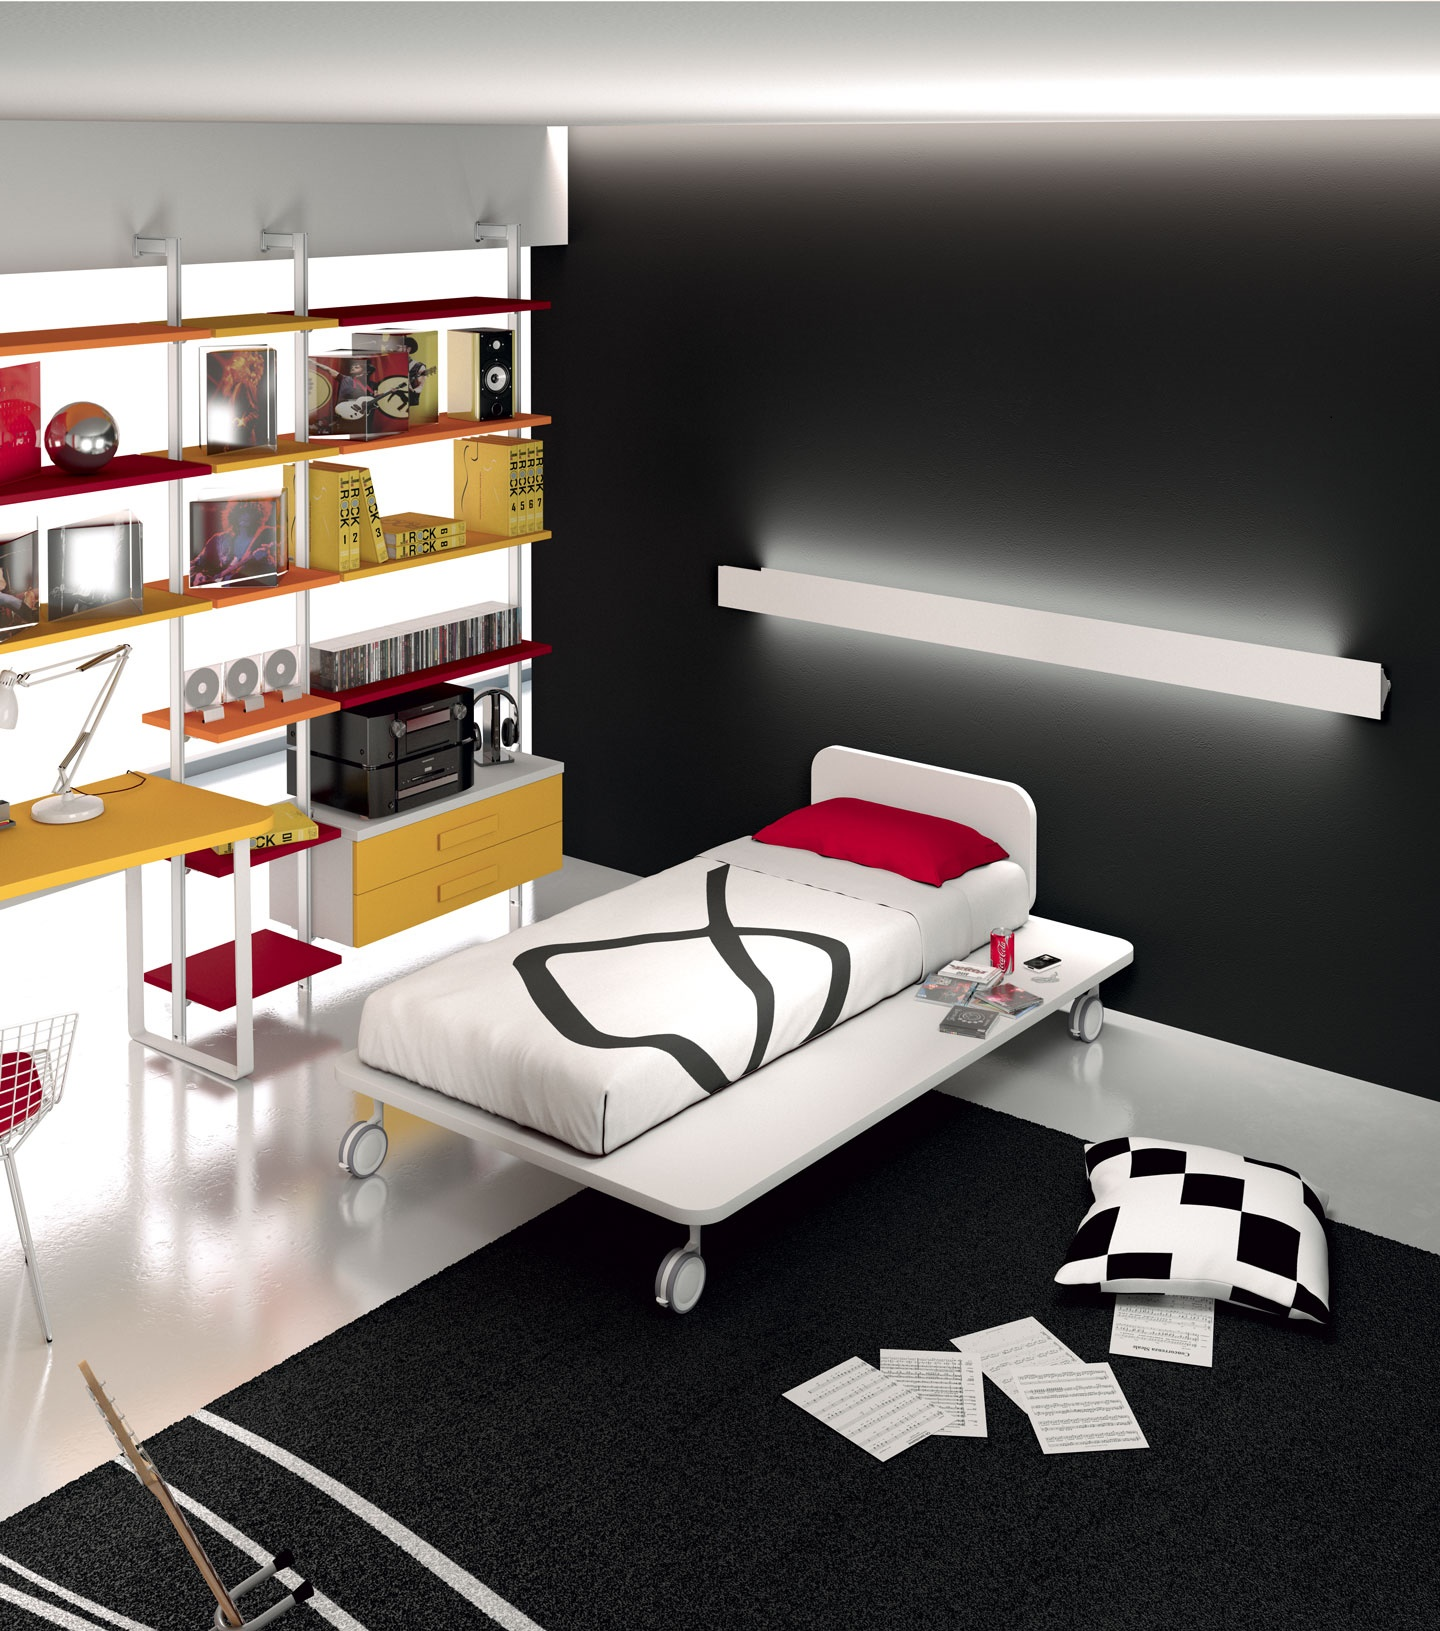 Children 39 s rooms made in italy ima mobili composition 1 - Mobili made in italy ...